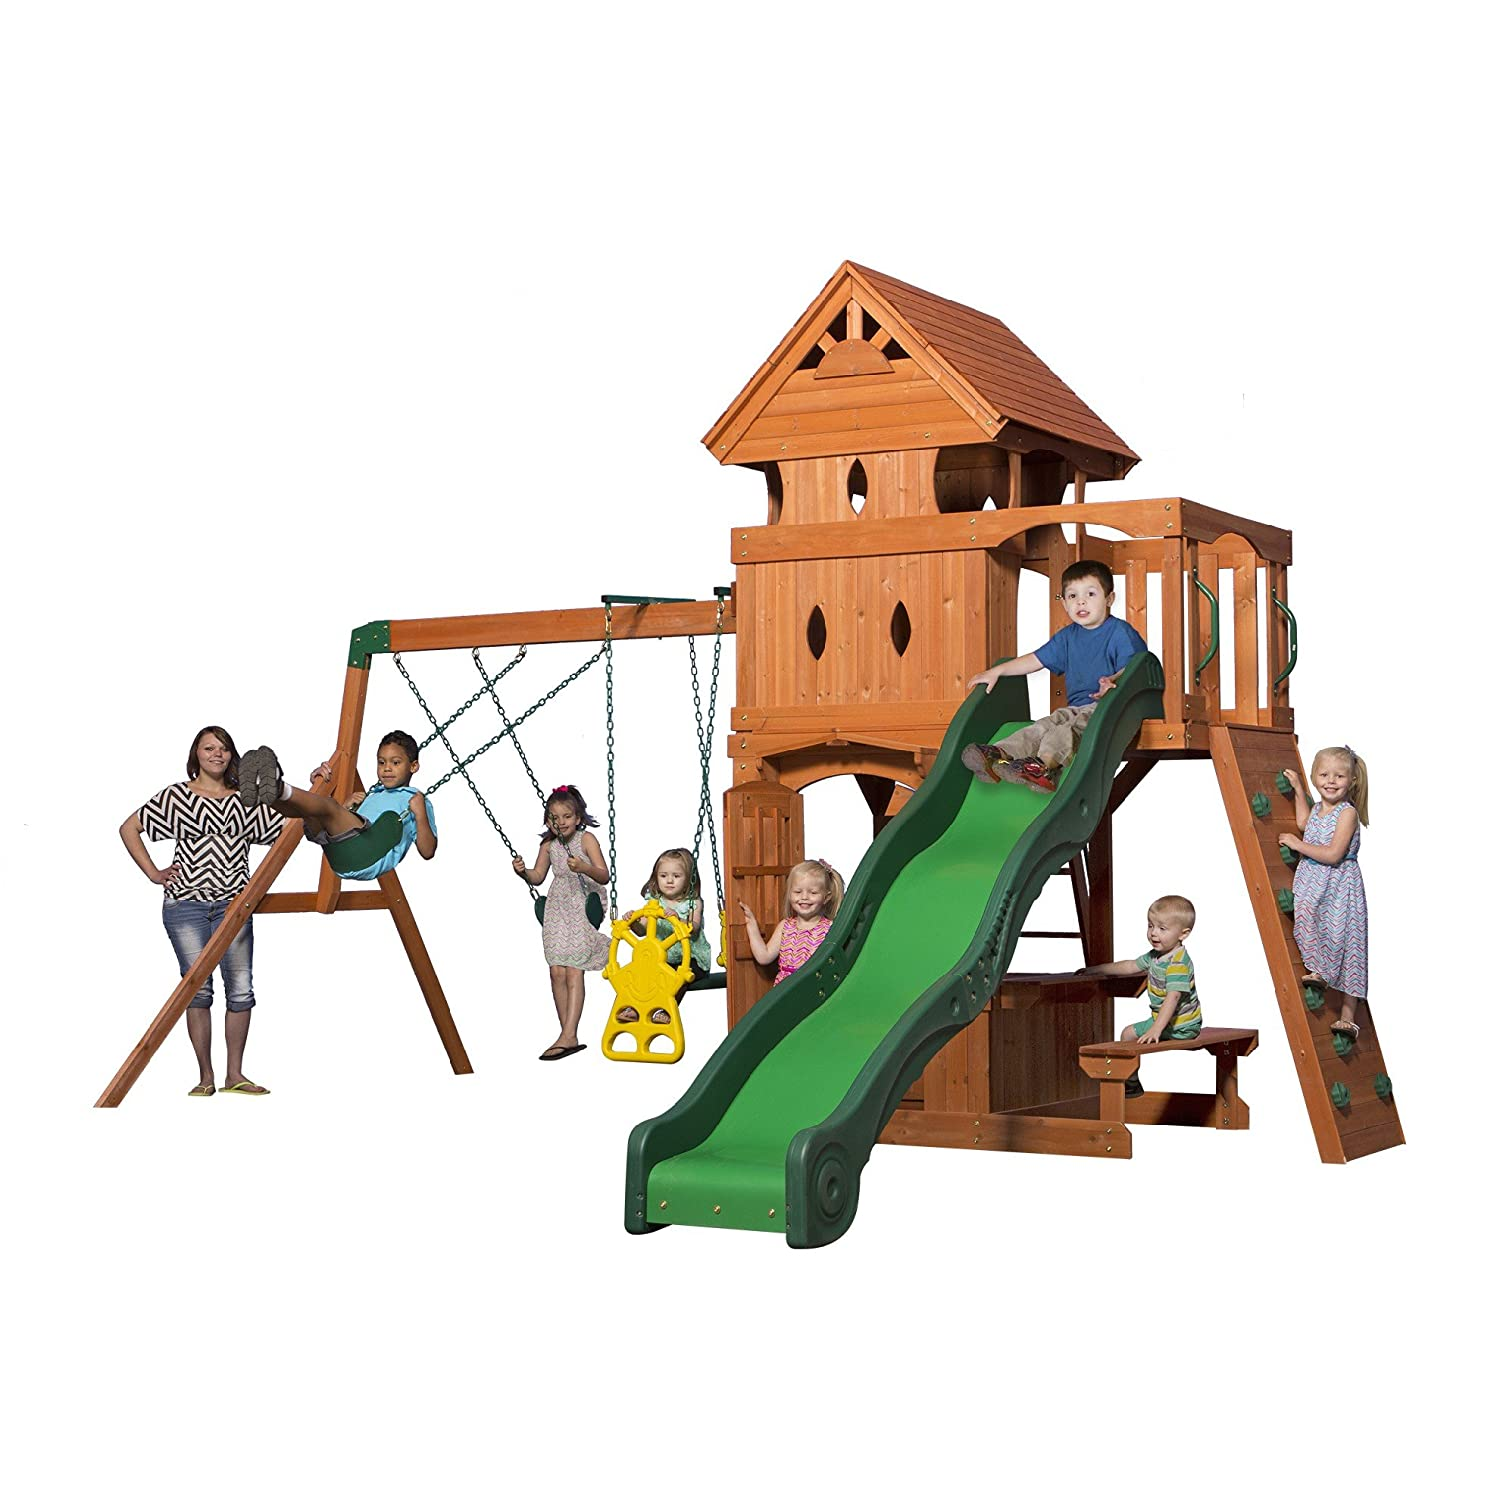 Swing sets wayfair metal amp wooden swingsets for kids - Amazon Com Backyard Discovery Monterey All Cedar Wood Playset Swing Set Toys Games